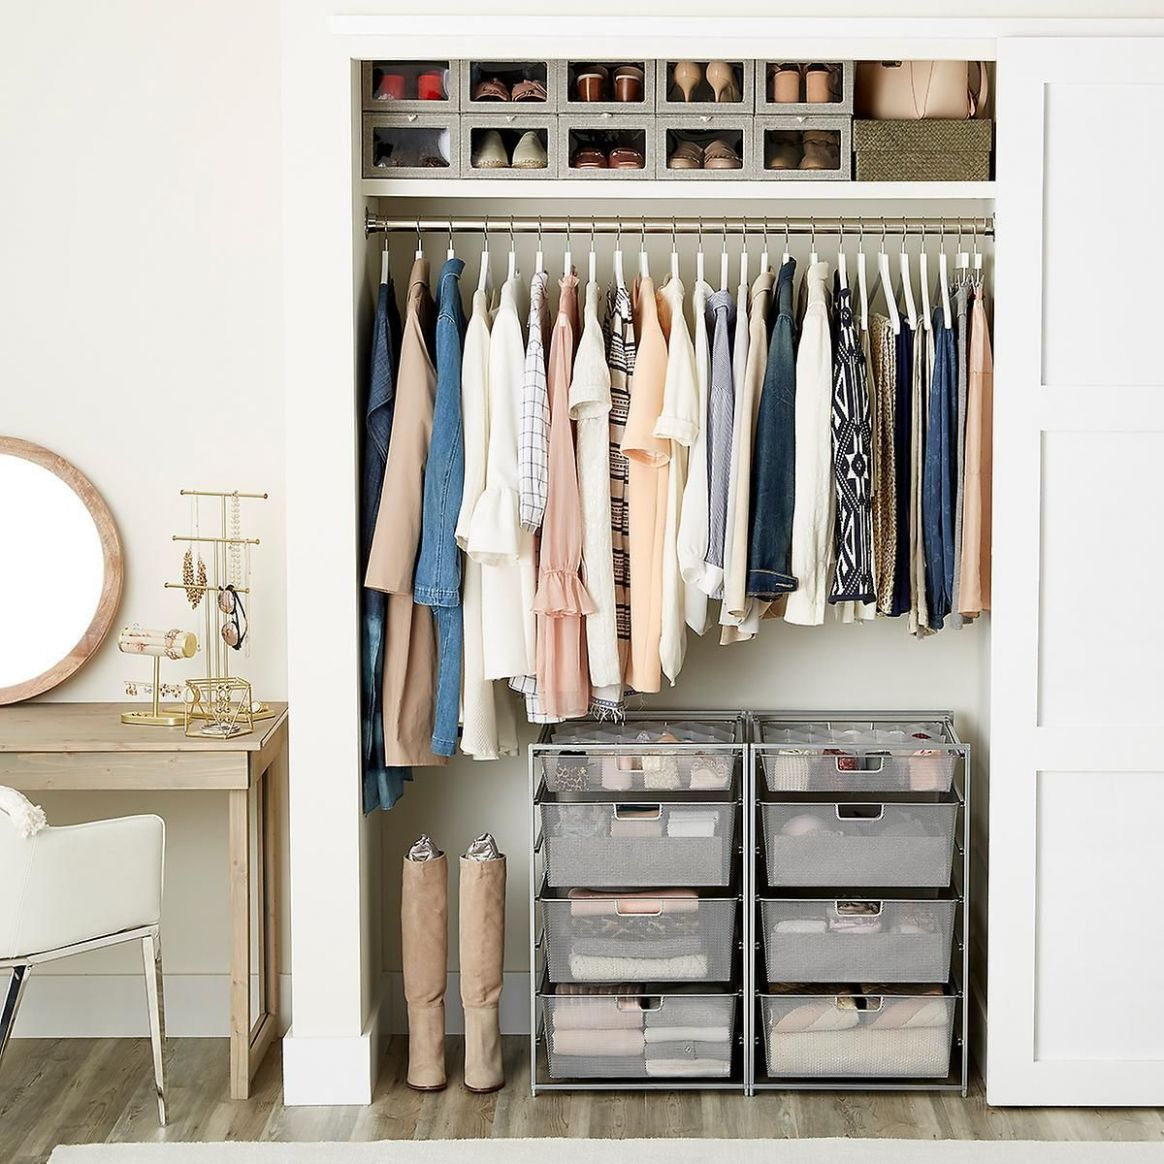 9 Small Apartment Closet Ideas that Save Space with Innovative ..